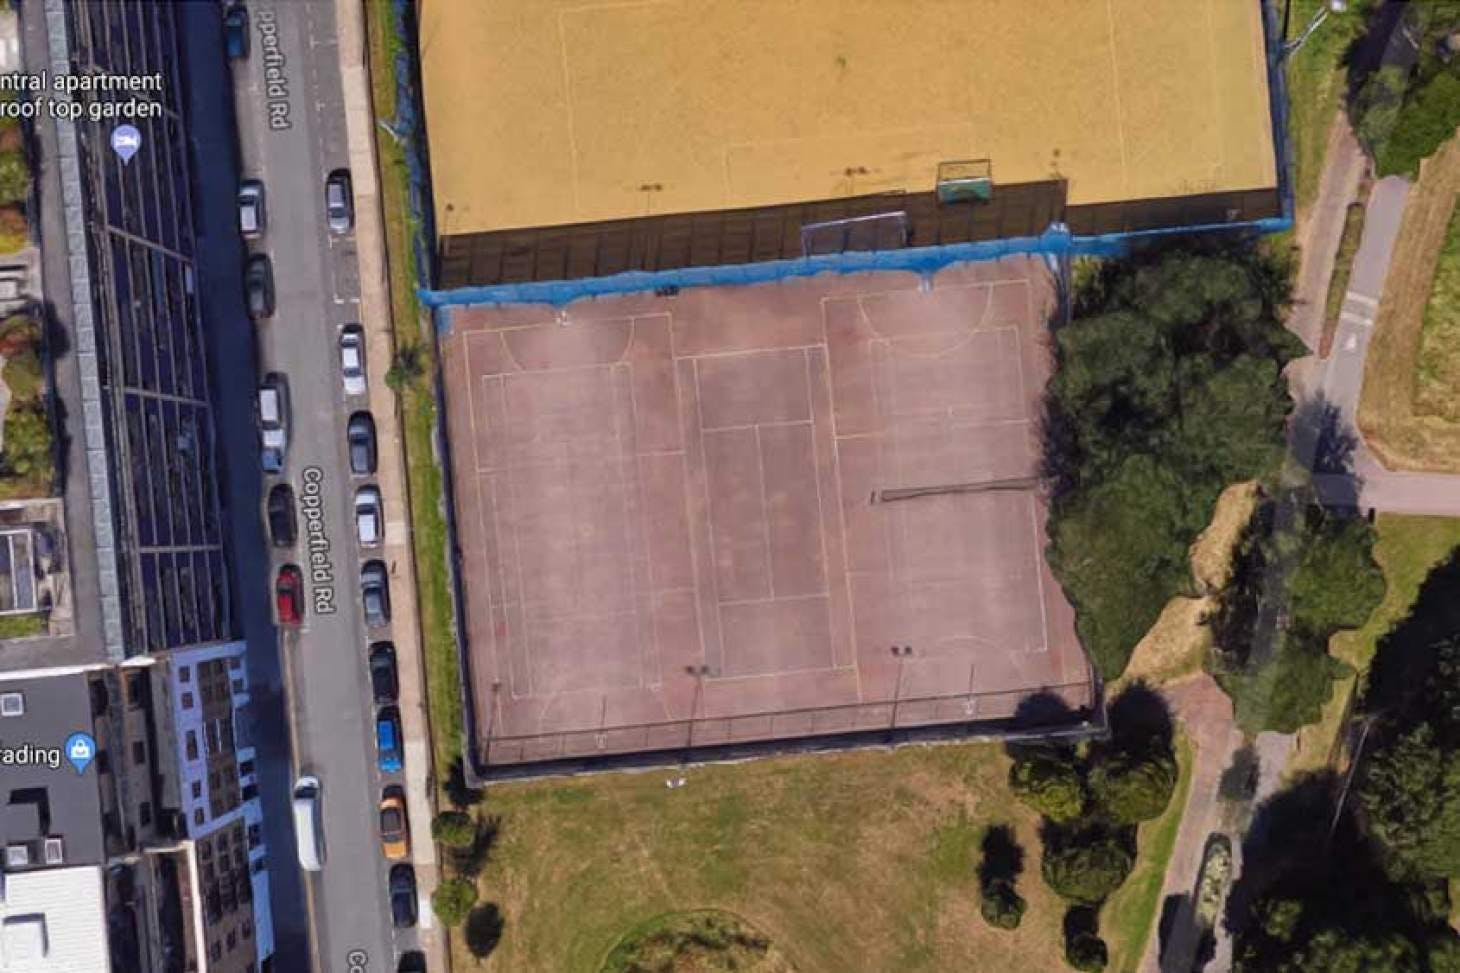 Mile End Park Leisure Centre and Stadium Outdoor | Concrete netball court